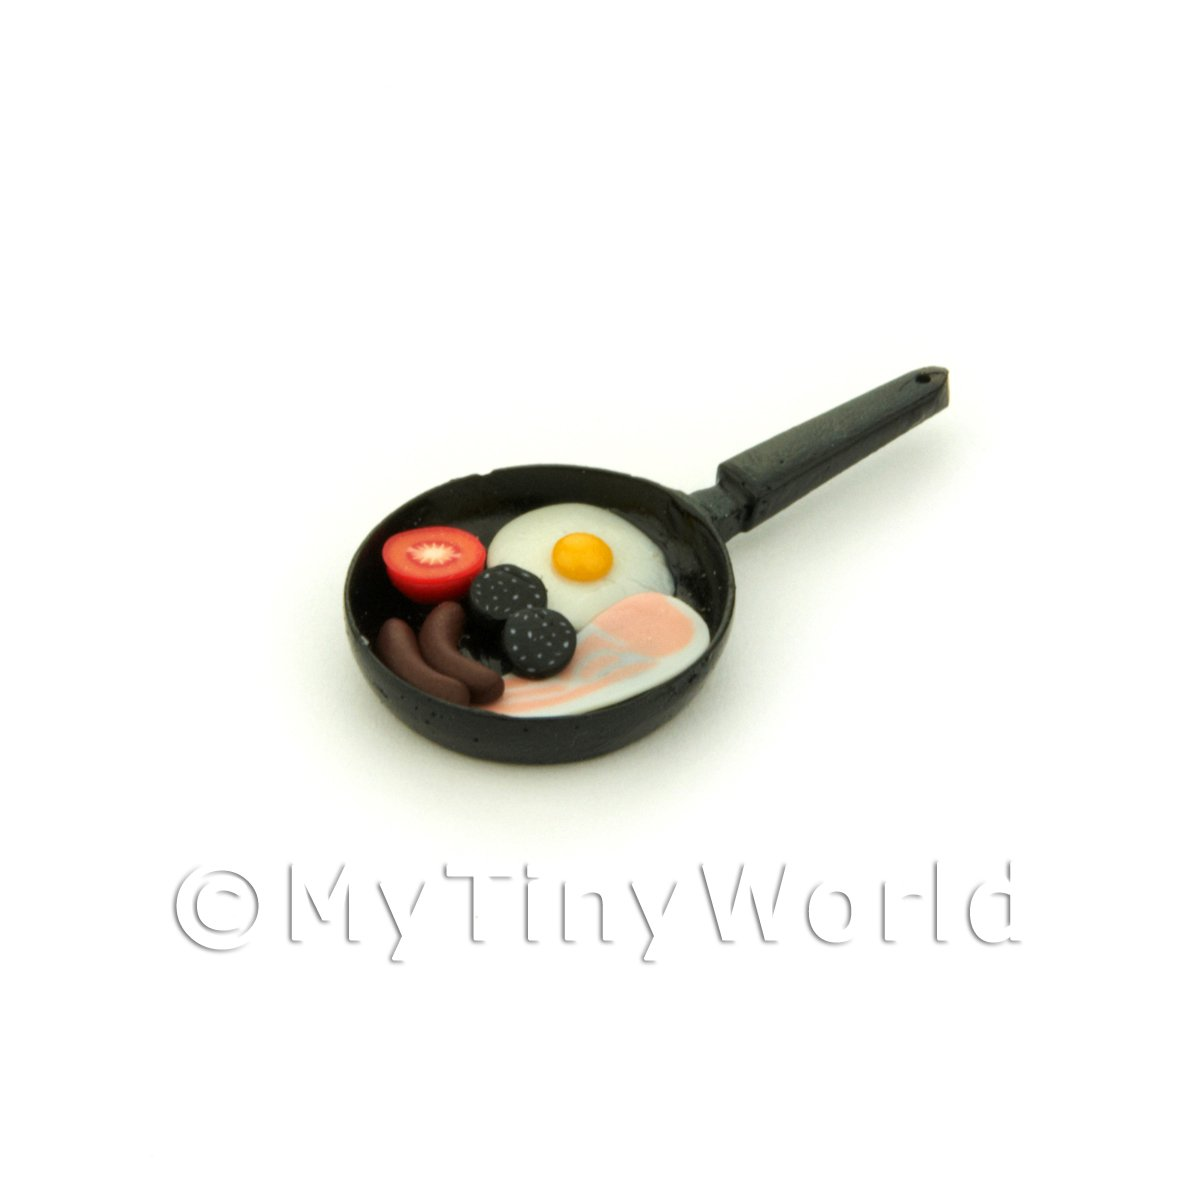 Dolls House Miniature Full Breakfast In a Frying Pan